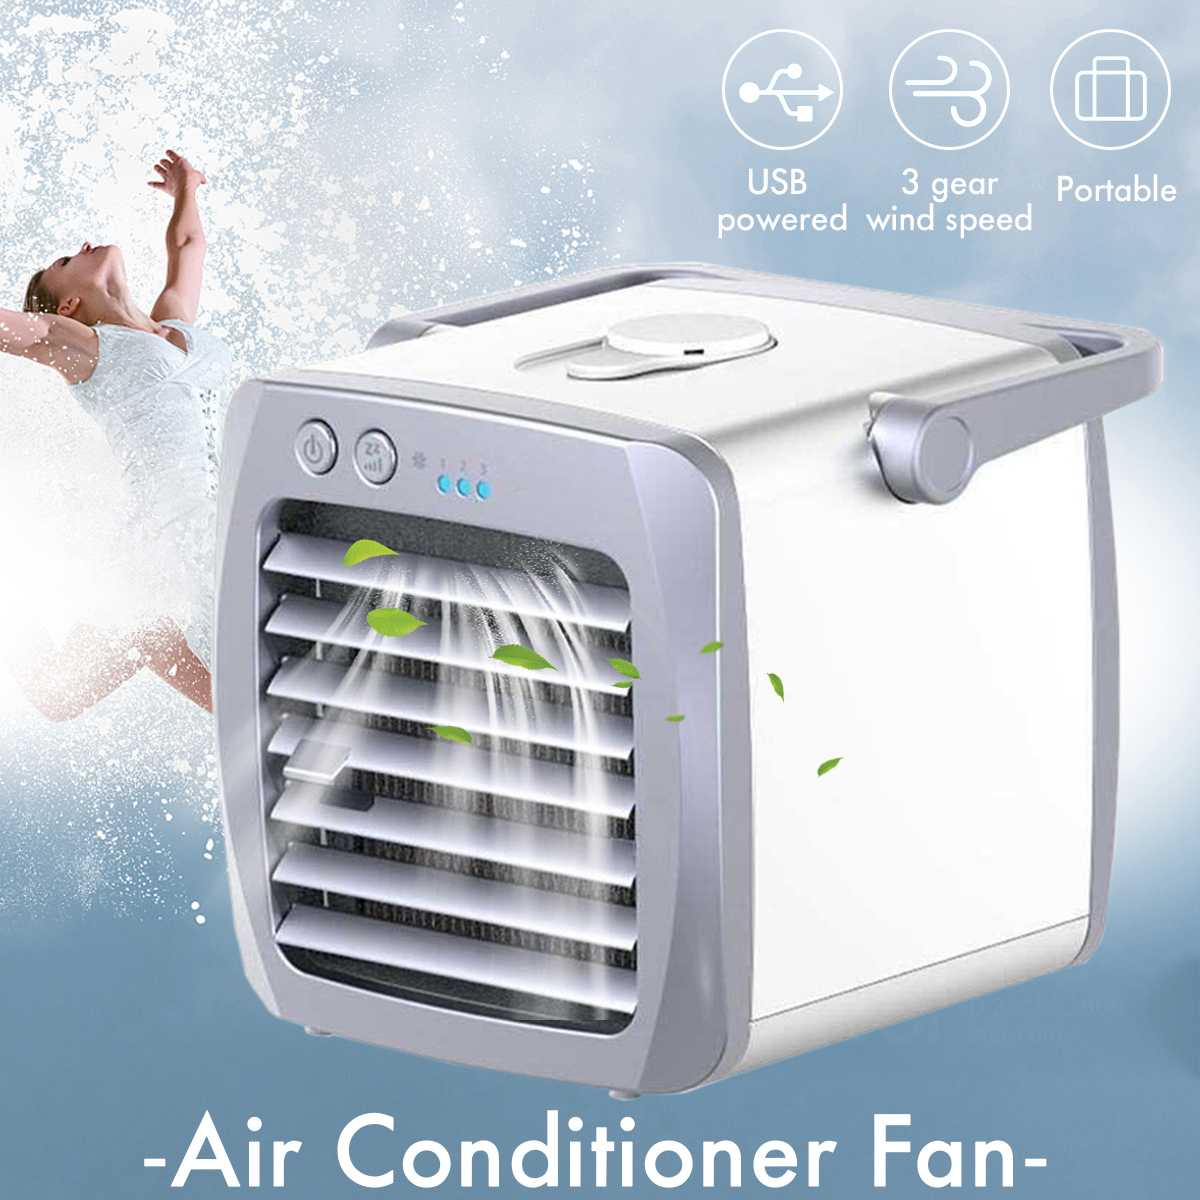 Air Cooler Arctic Air Personal Space Cooler Mini USB Fan Water Cooling Space Air Conditioner Fan Device Home Office Desk